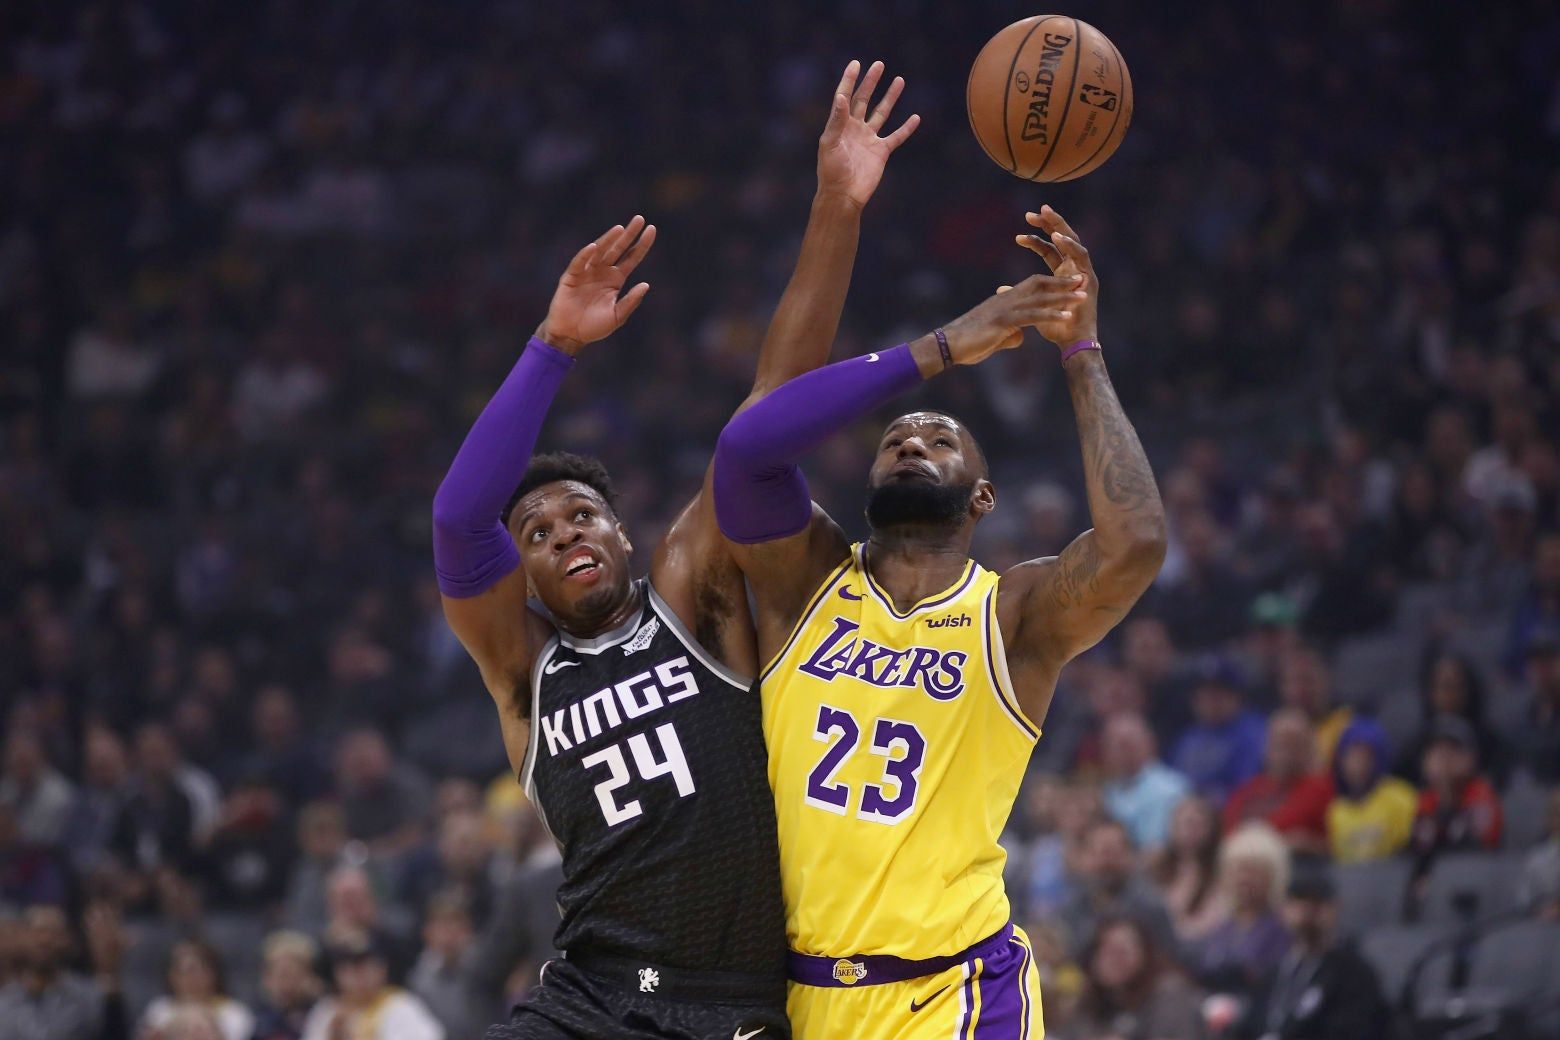 LeBron James and Buddy Hield go for the ball on Saturday at Golden 1 Center in Sacramento, California.